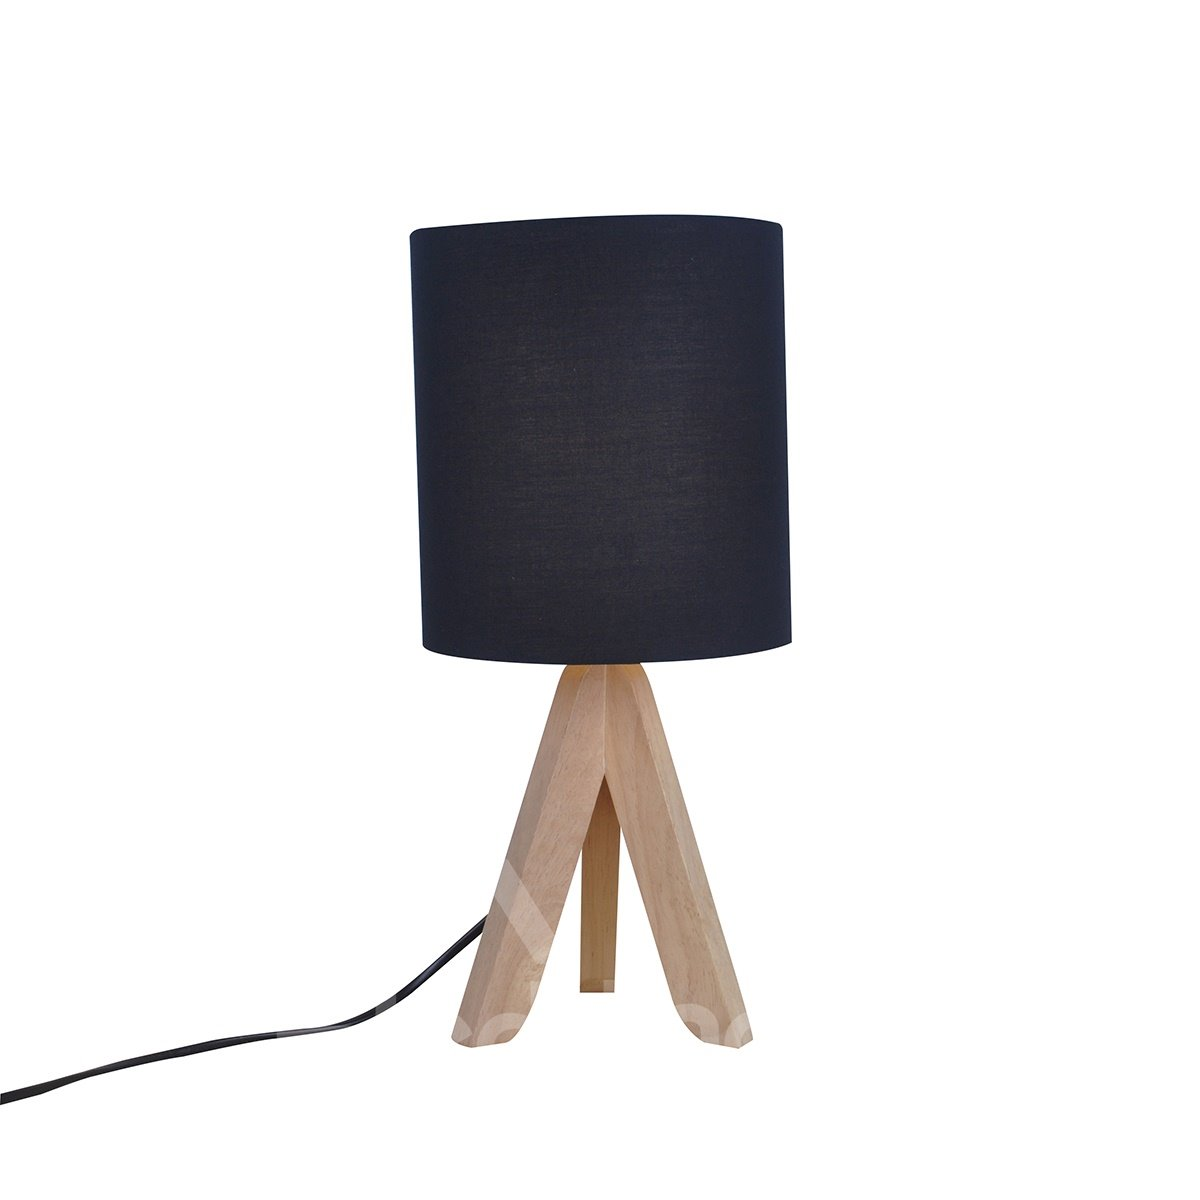 7.09×14.96in Black Shade and Wooden Base 1 Bulb Table Lamp